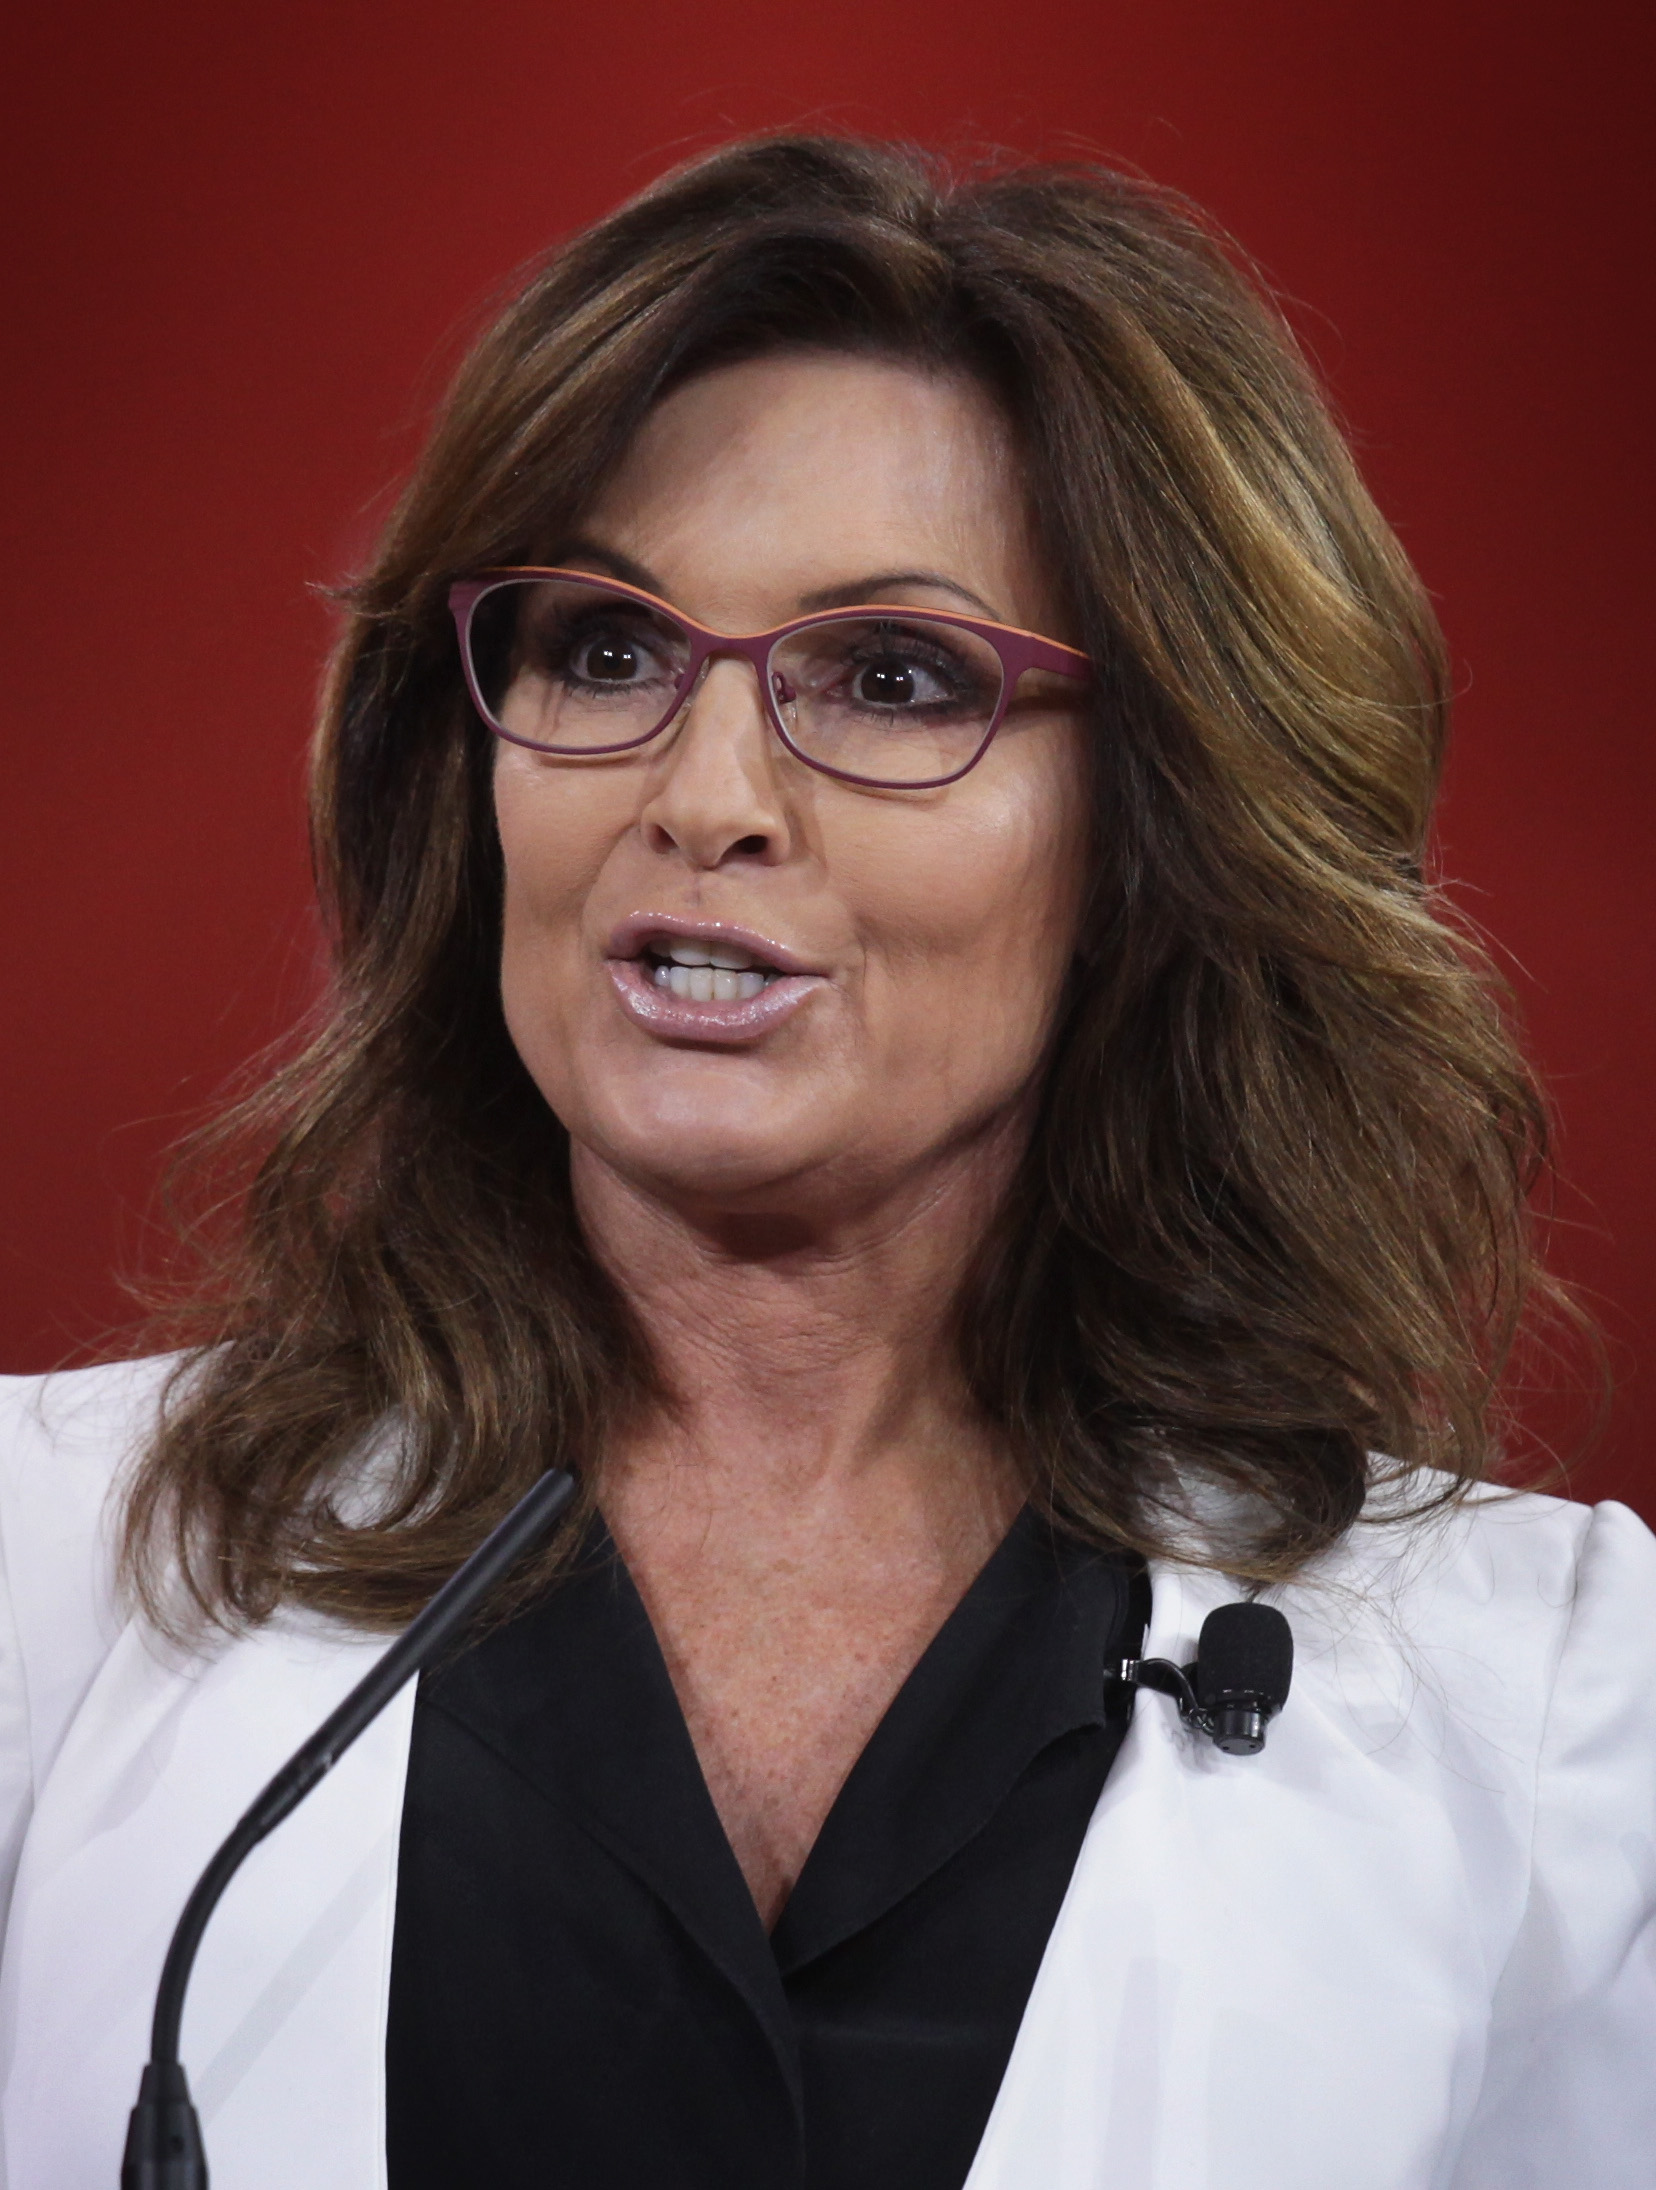 Former Alaska Governor Sarah Palin addresses the 42nd annual Conservative Political Action Conference (CPAC) on Feb. 26, 2015 in National Harbor, Maryland.